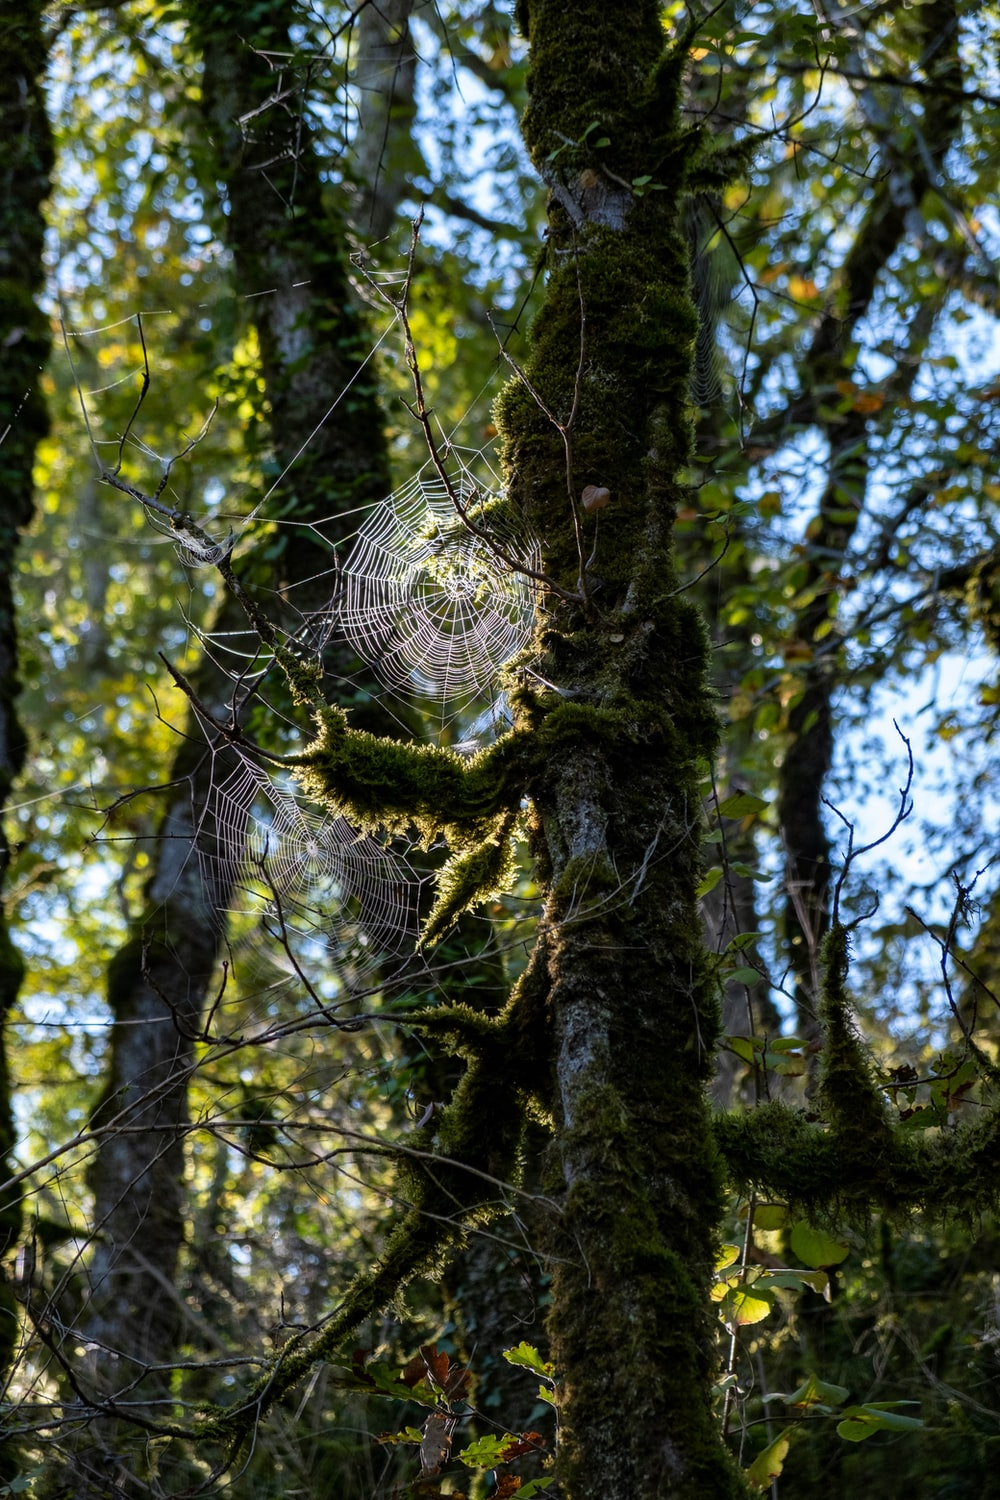 spider web on brown tree trunk during daytime